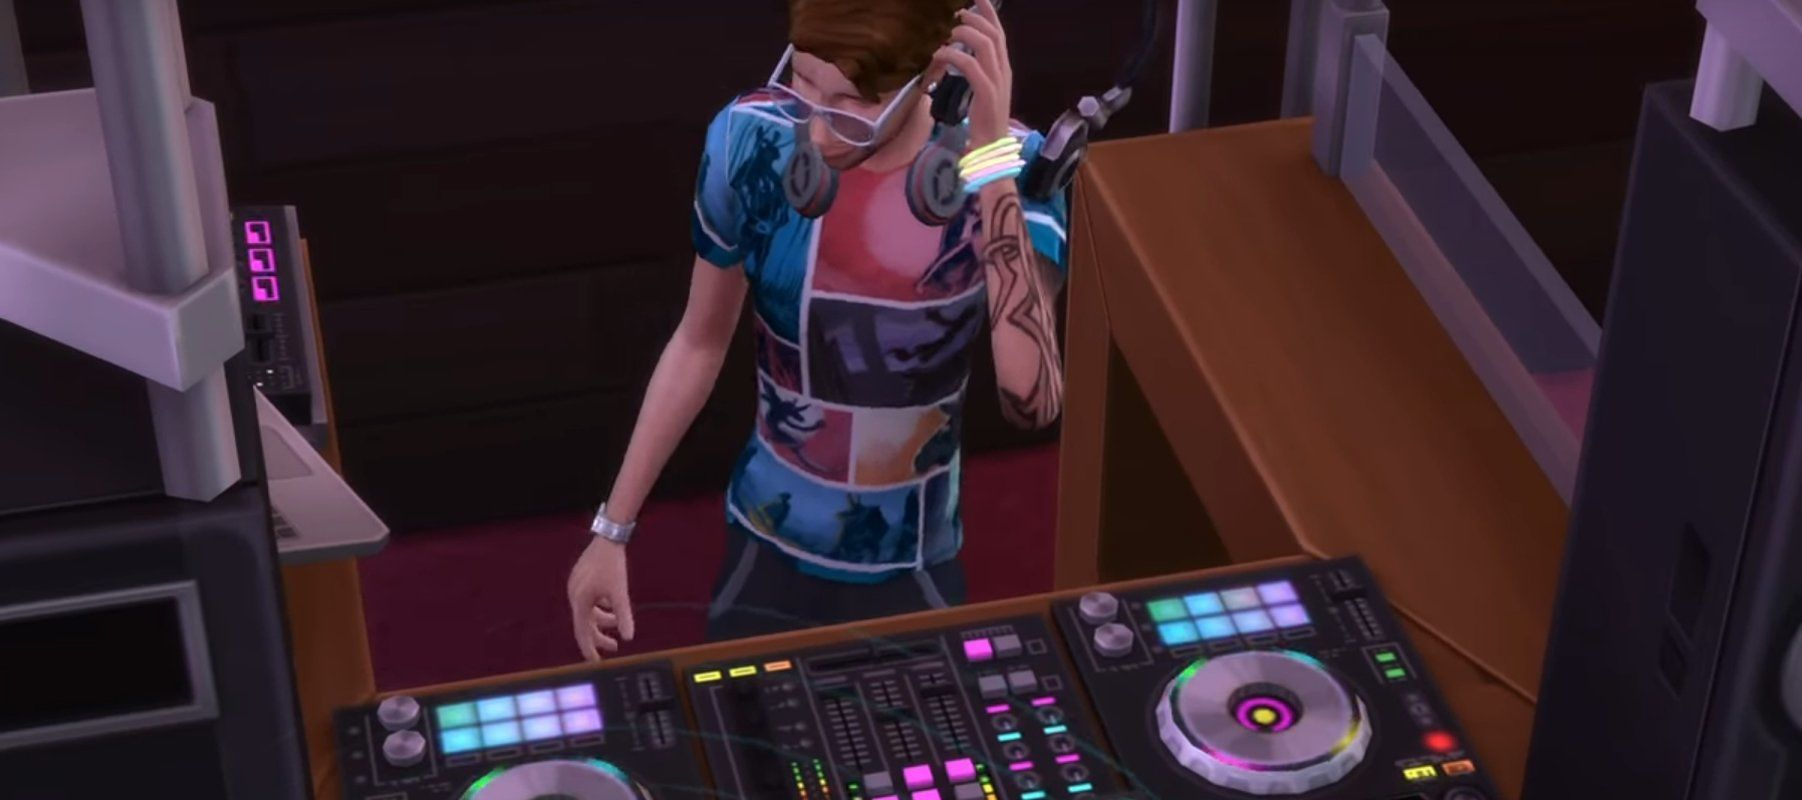 The Sims 4 Update Adds New Music Plus Several Fixes And Improvements